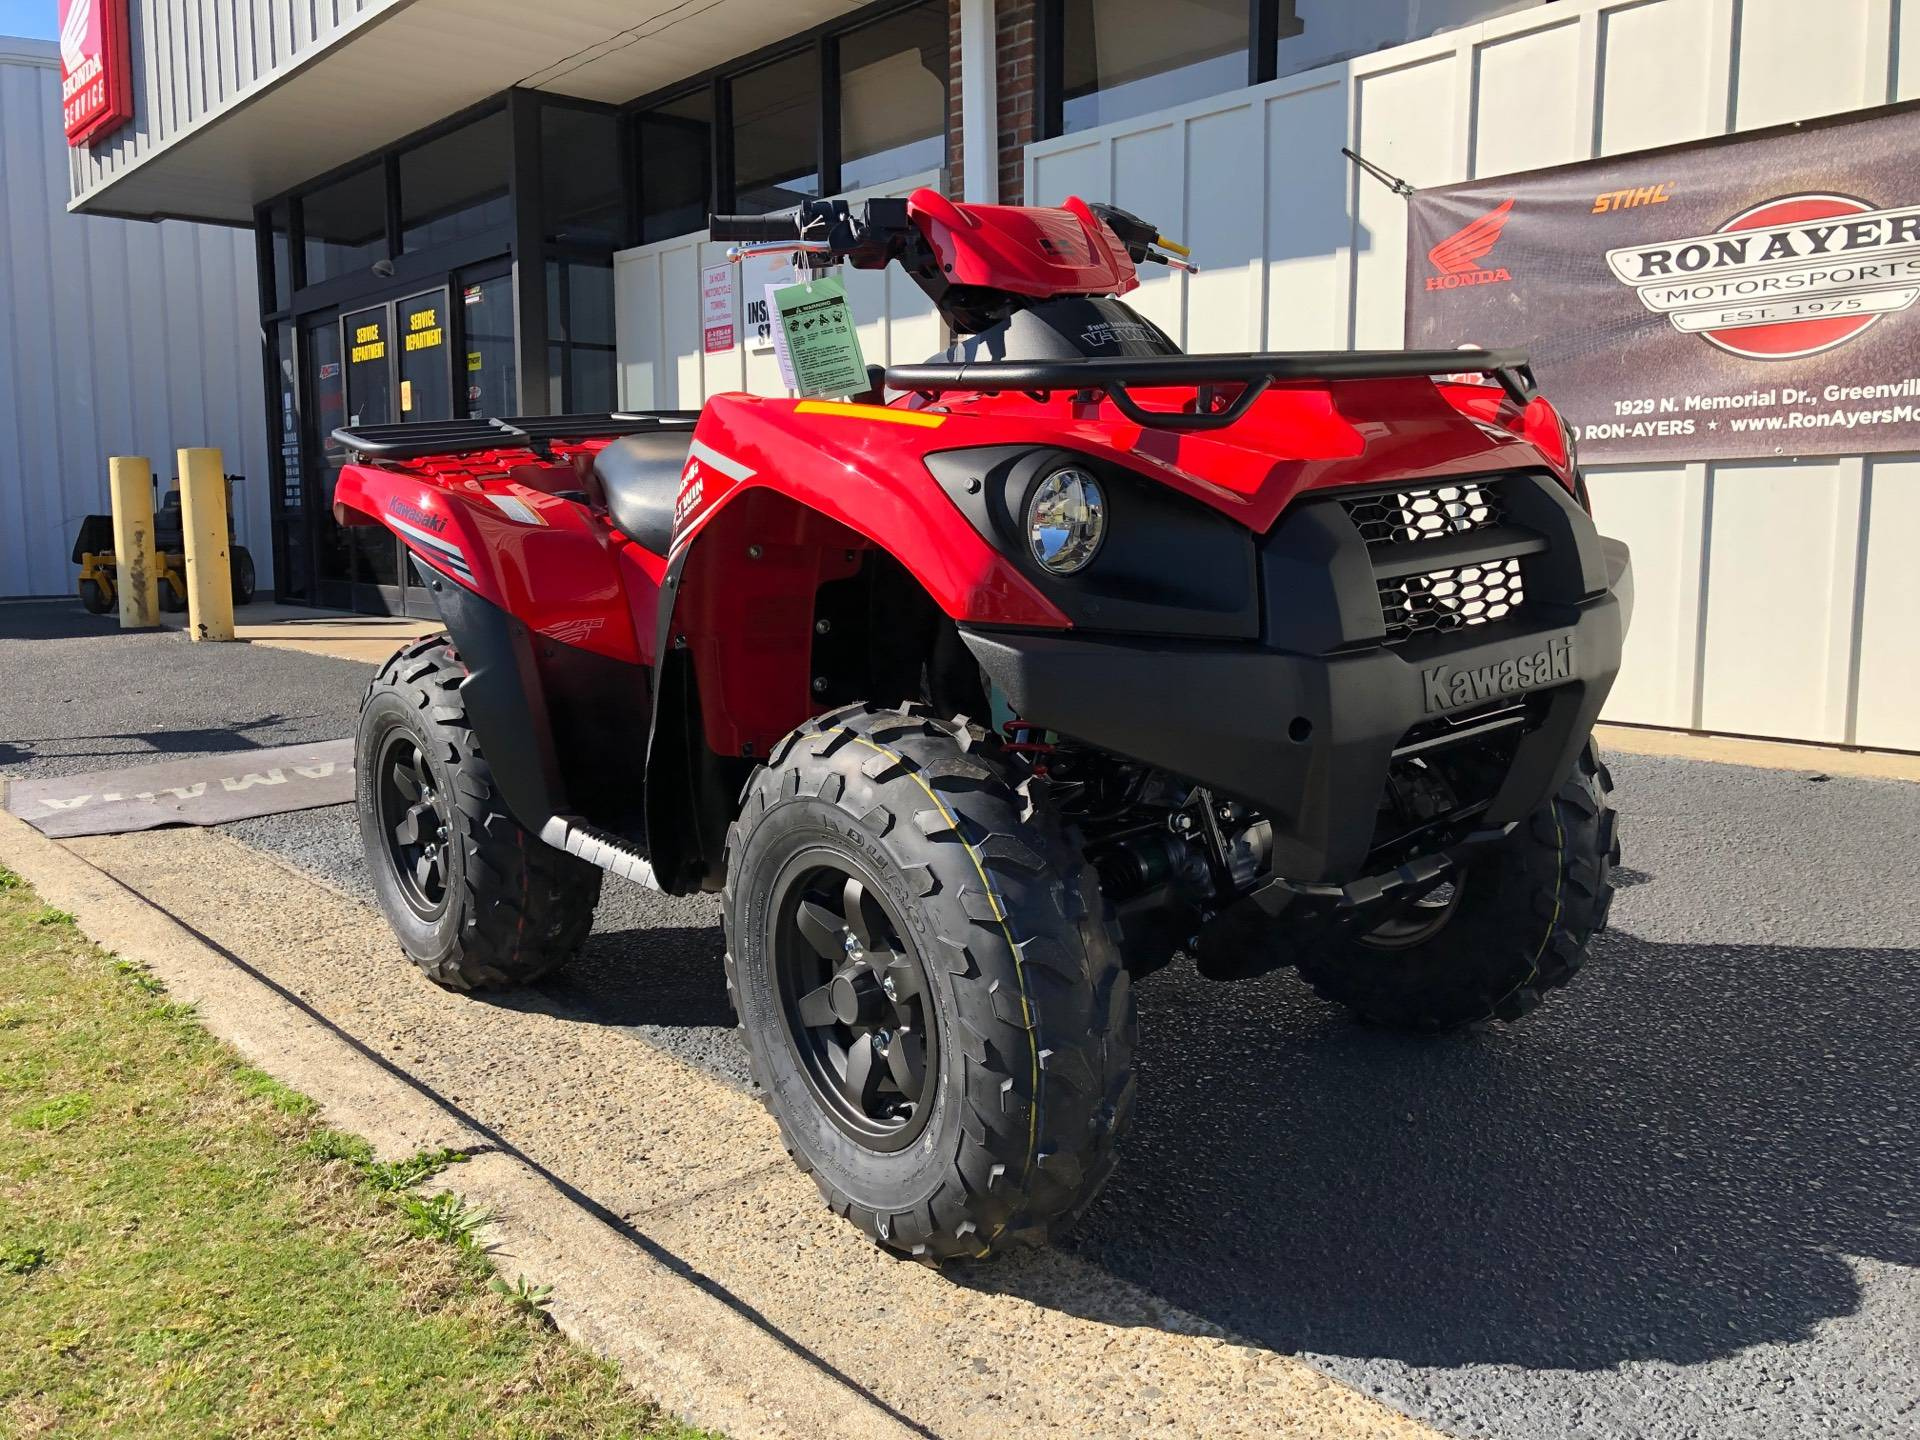 2021 Kawasaki Brute Force 750 4x4i in Greenville, North Carolina - Photo 3